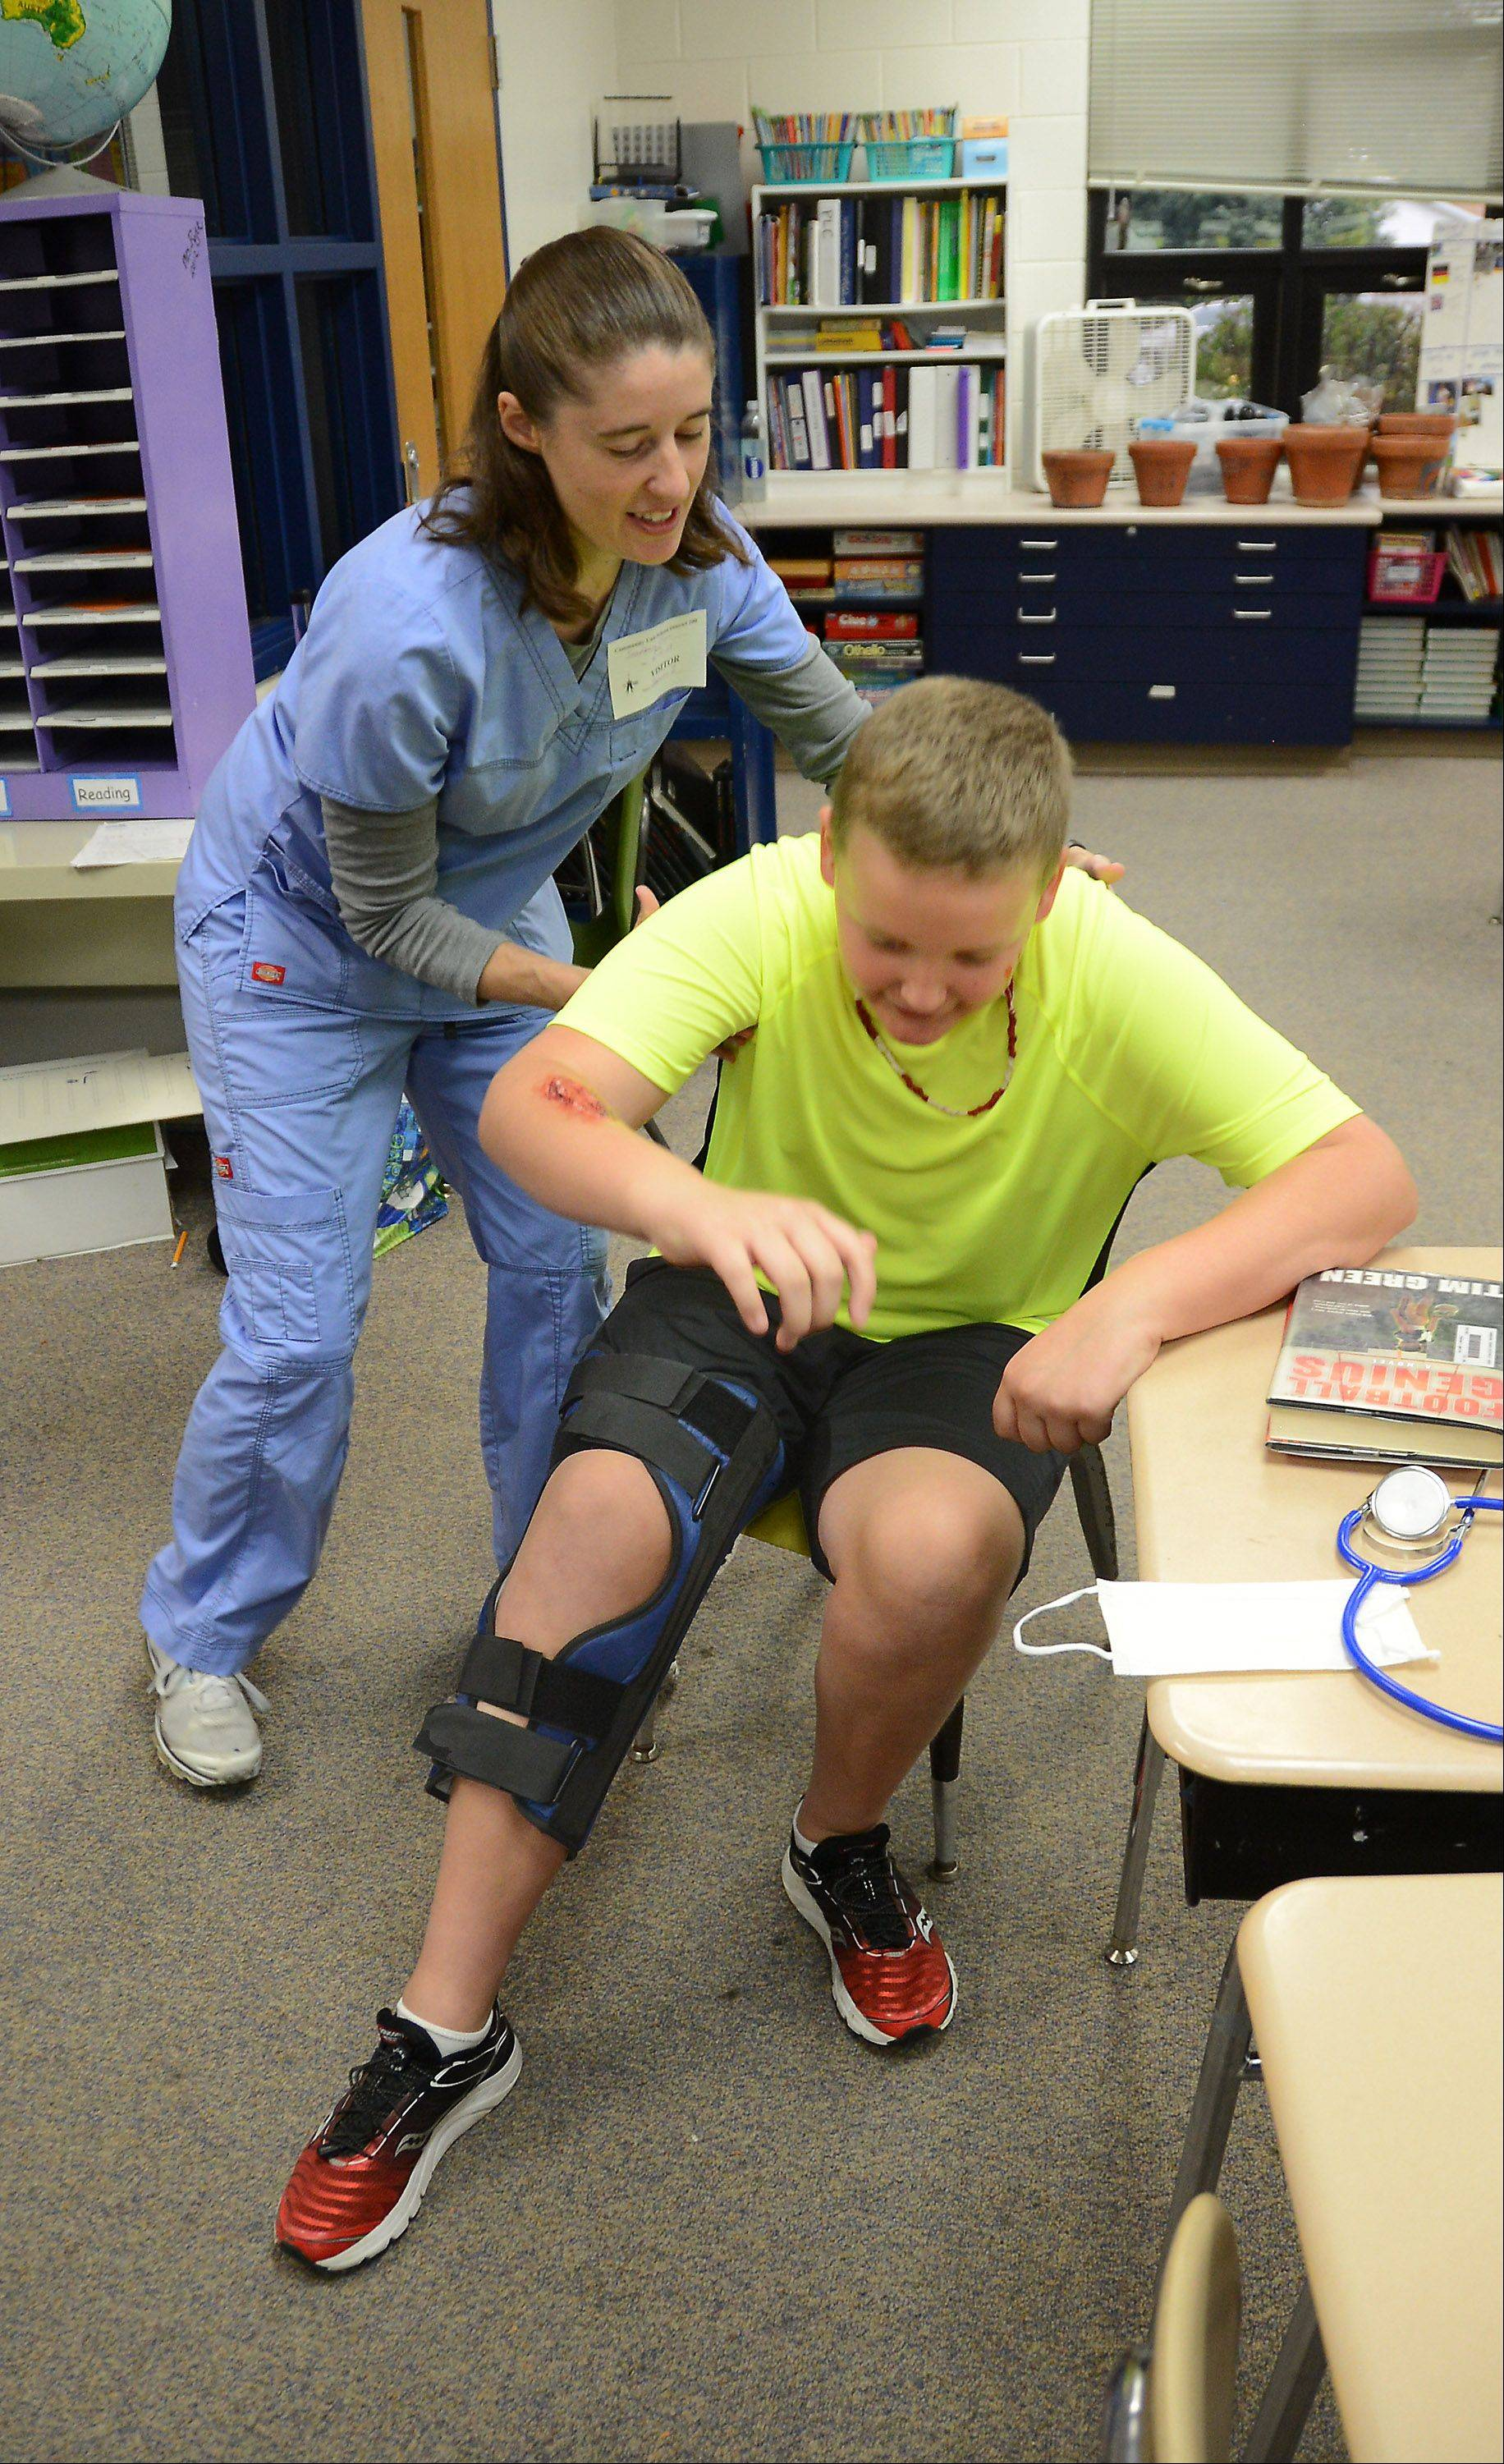 Standing up wasn't as easy as Tyler Crowley expected after being fitted for a leg brace by Central DuPage Hospital nurse Shannon Sprunger during Friday's Health and Safety Fair at Sandburg Elementary School.